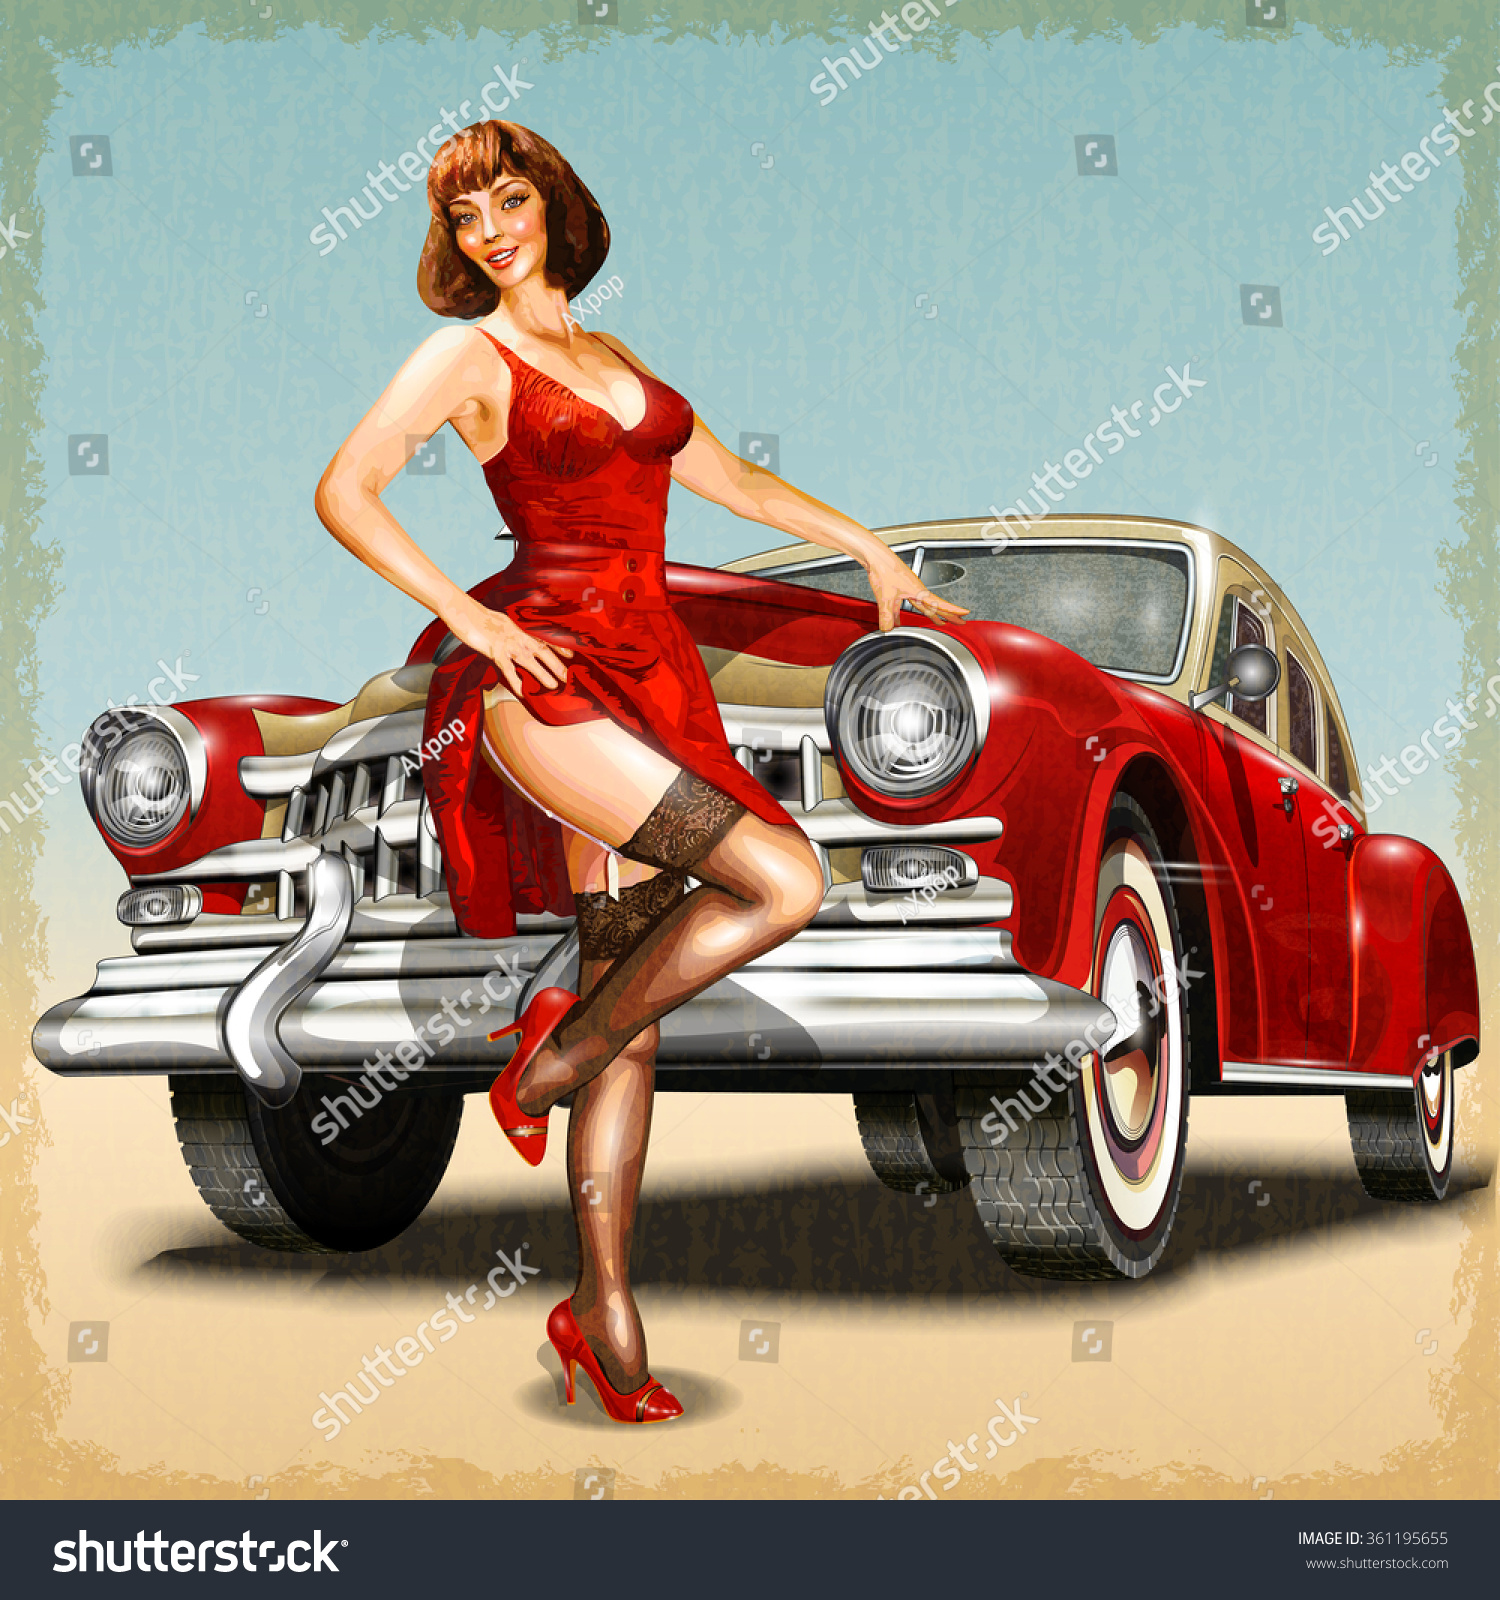 Royalty-free Vintage background with pin-up girl and ...